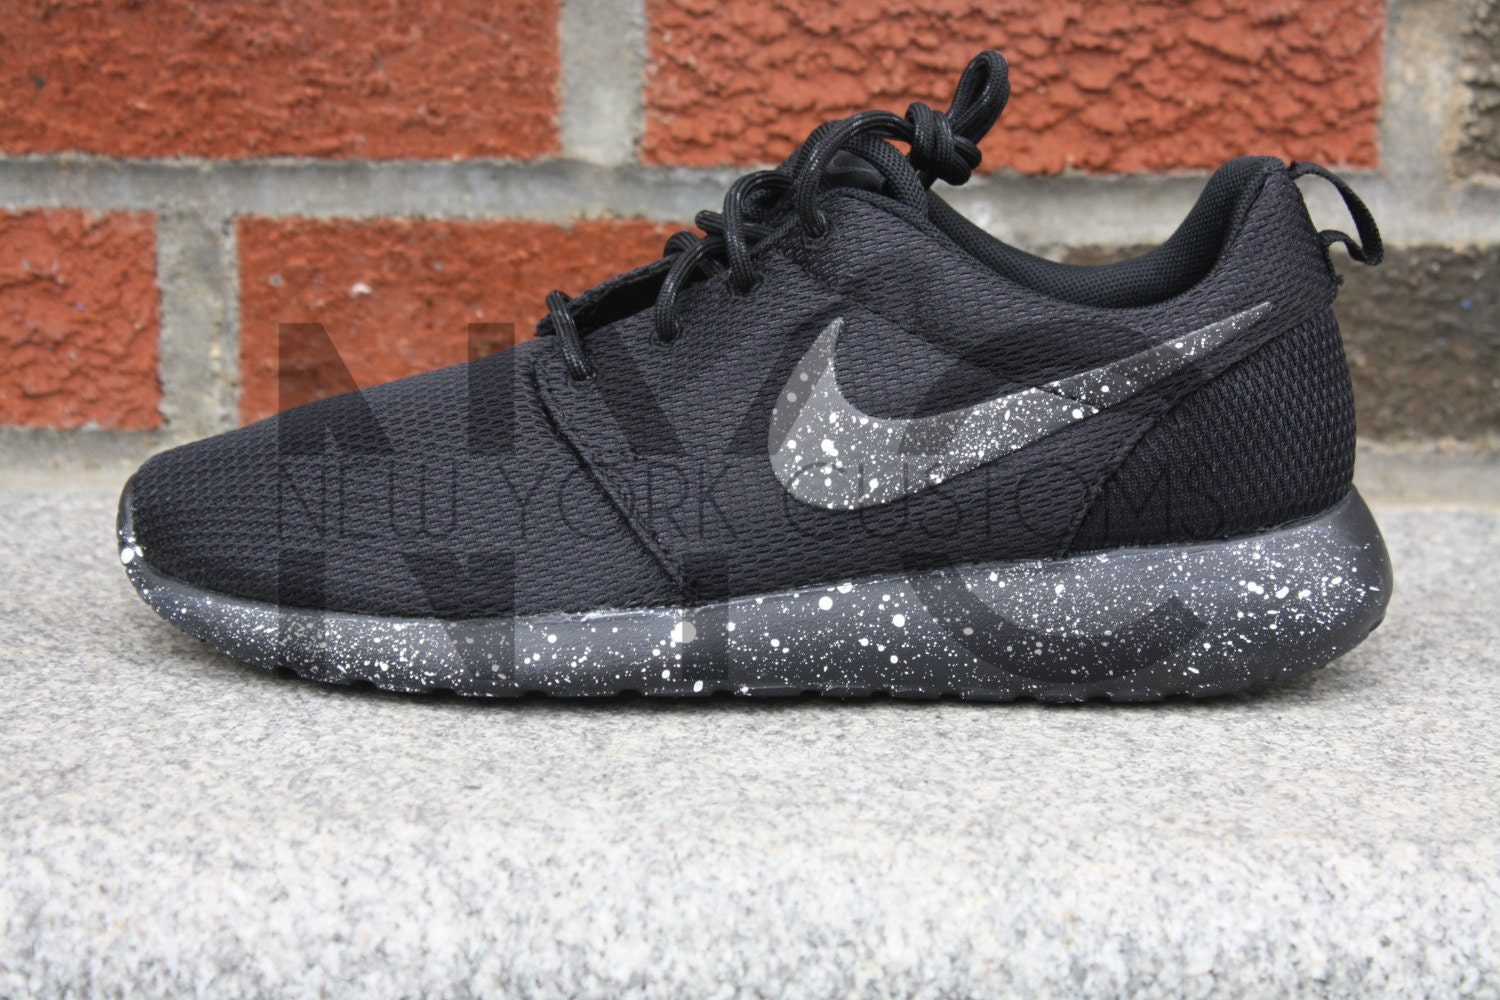 nike roshe one run black white splatter oreo speckled custom. Black Bedroom Furniture Sets. Home Design Ideas